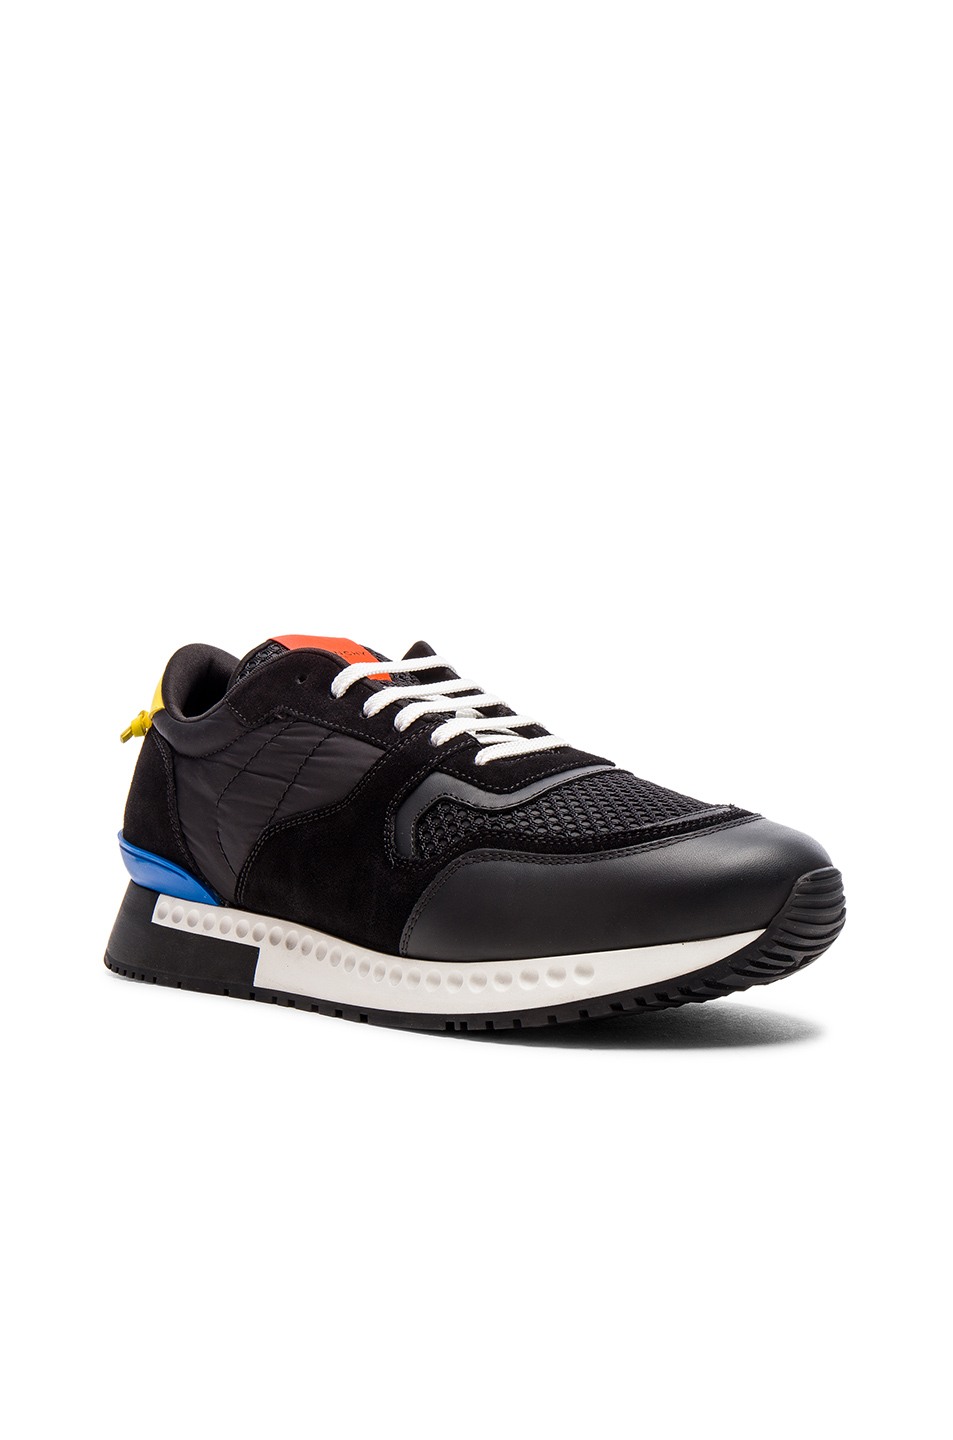 Givenchy Active Runner Sneakers in Black